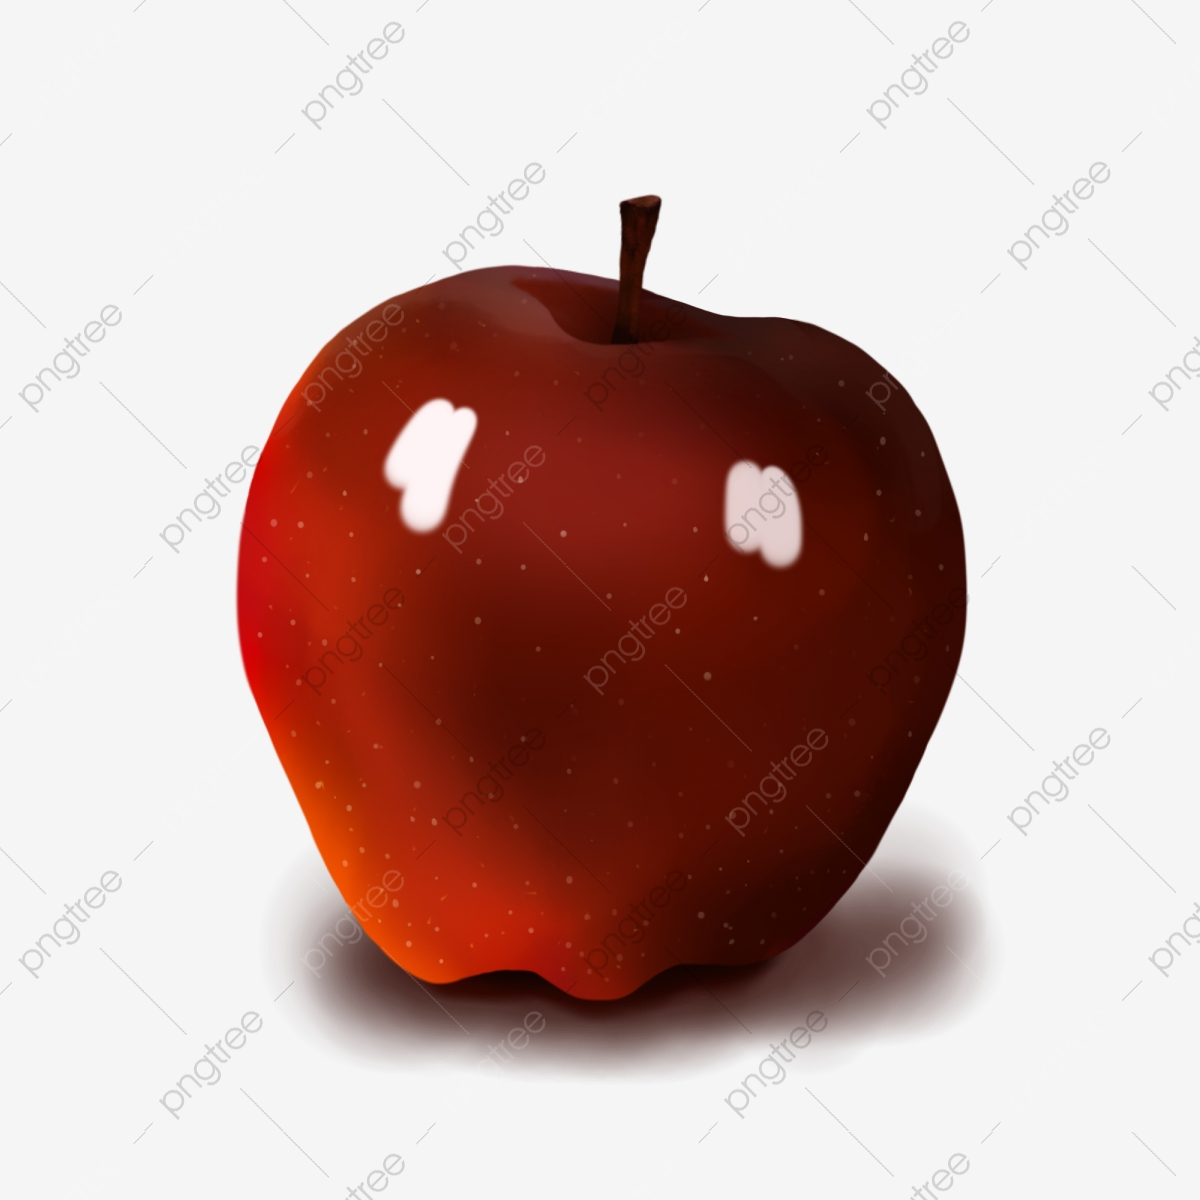 Apple, Fruit, Green Apple, Red Apple PNG Transparent Clipart Image.